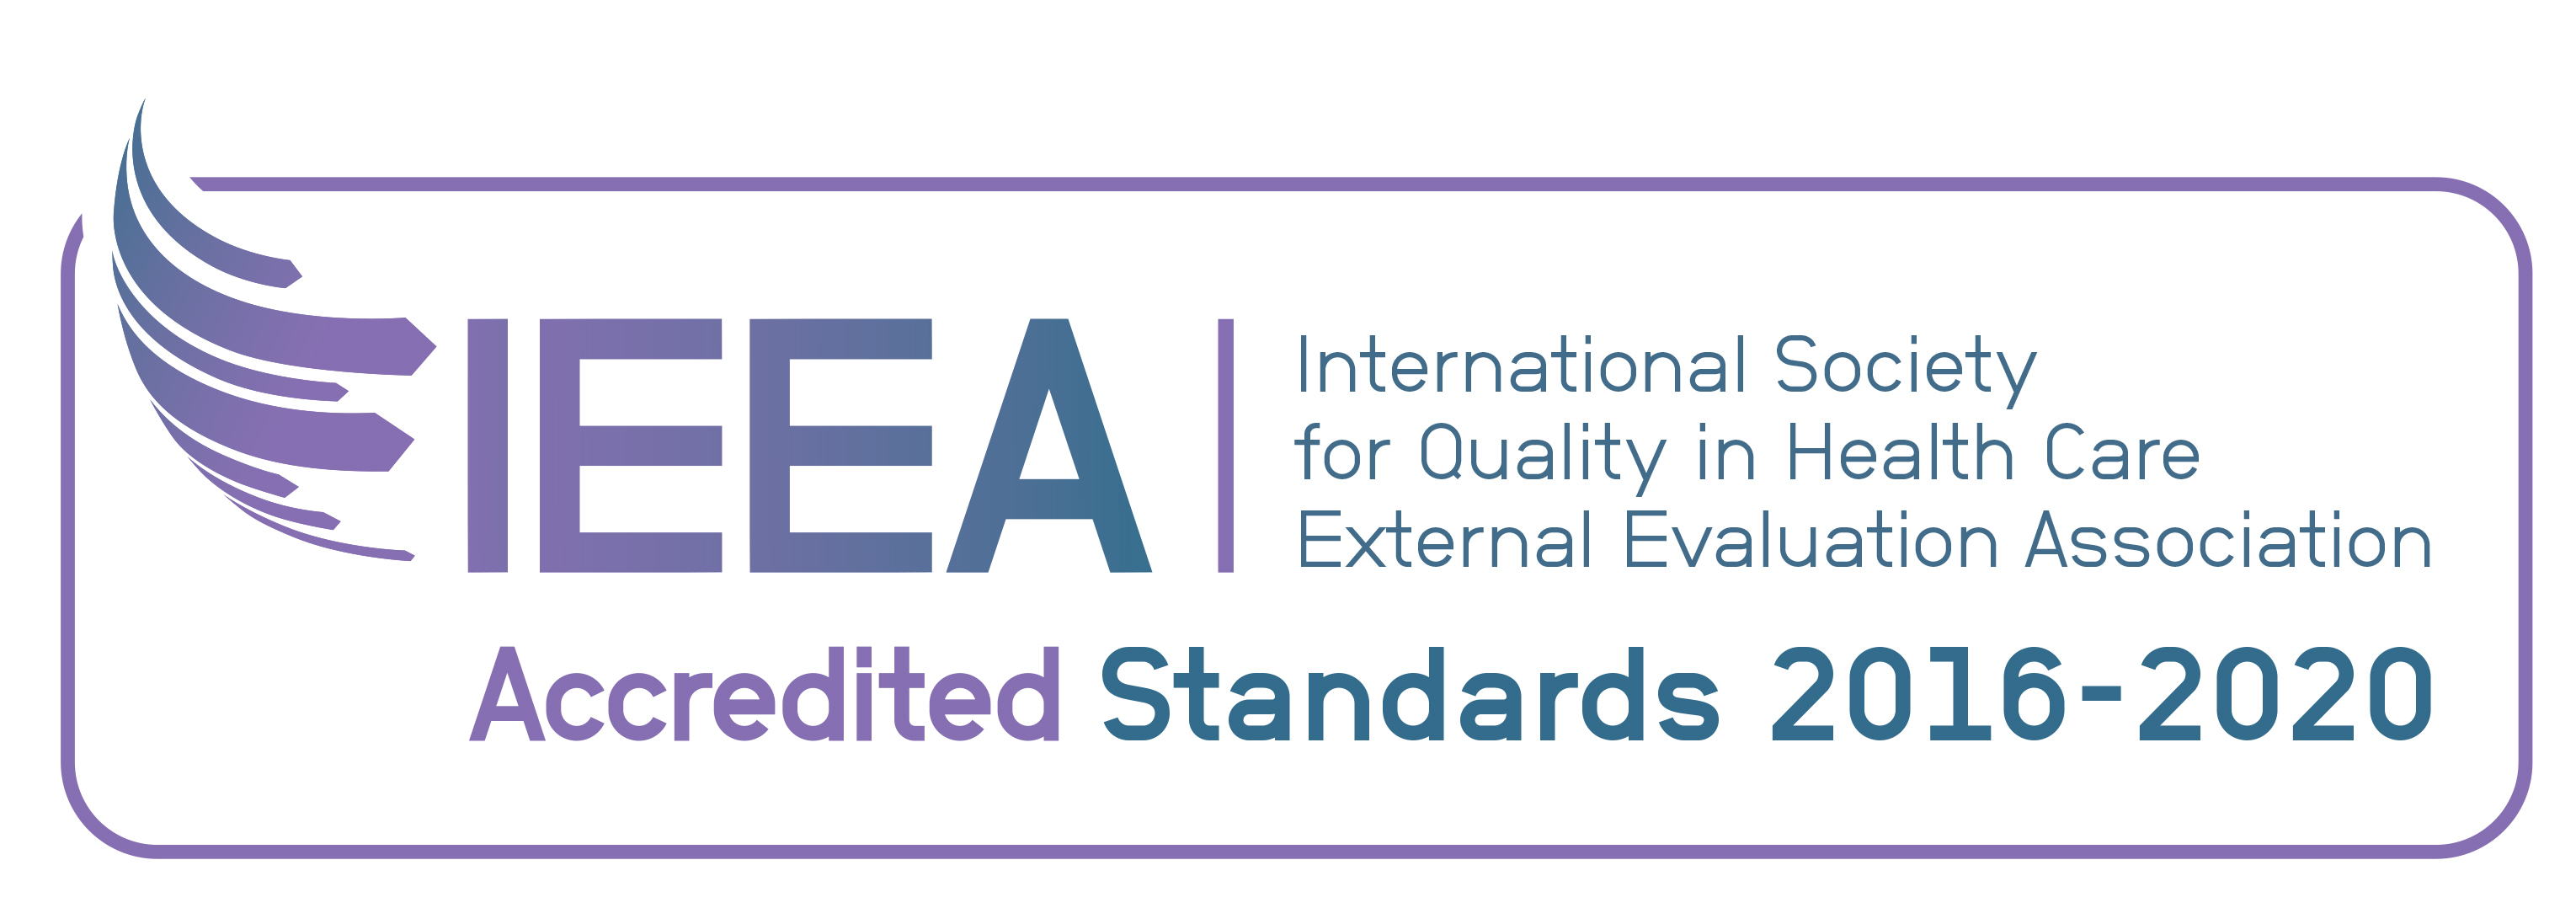 Logo showing ASES's accreditation in The International Society for Quality in Health and Social Care (ISQua)